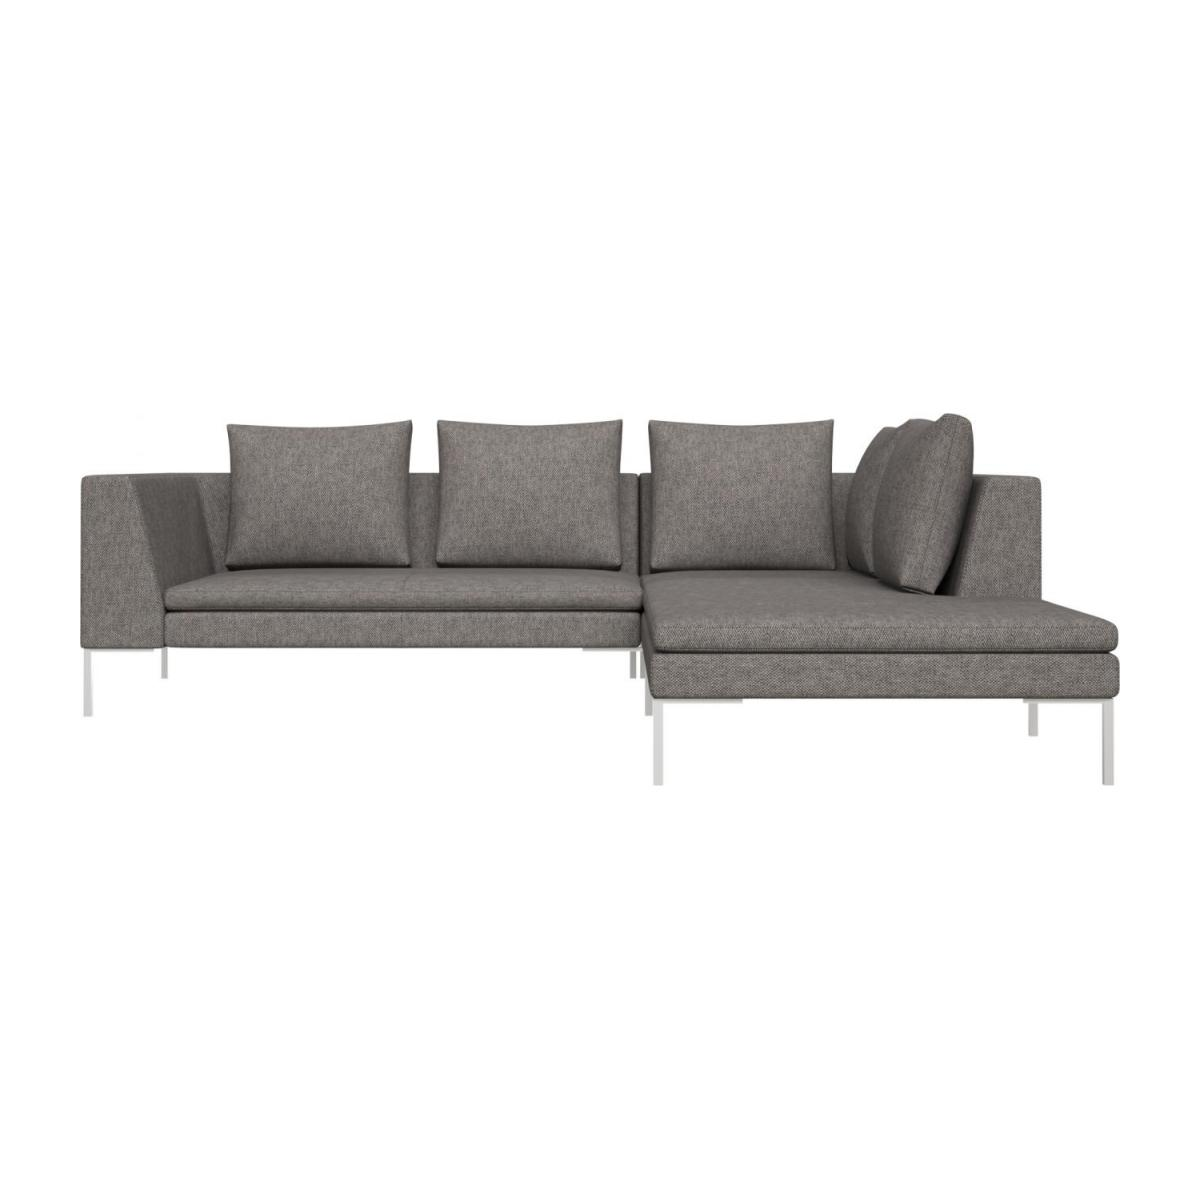 Montino 2 seater sofa with chaise longue on the right in Bellagio fabric,  night black